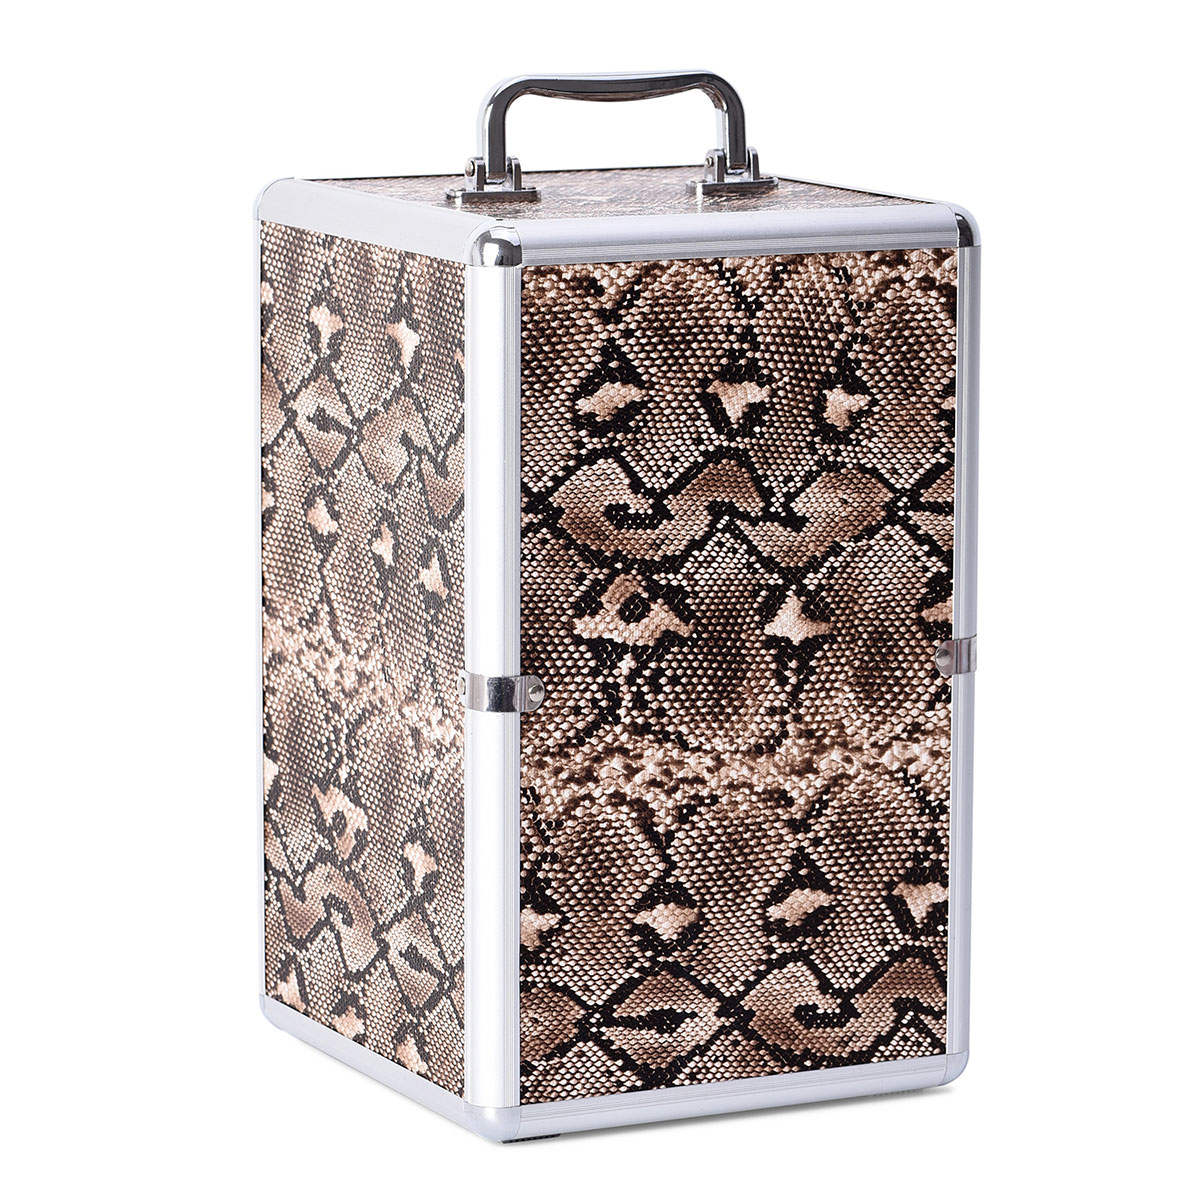 Super Organizer Brown Snake Embossed Faux Leather 5 Drawer ...